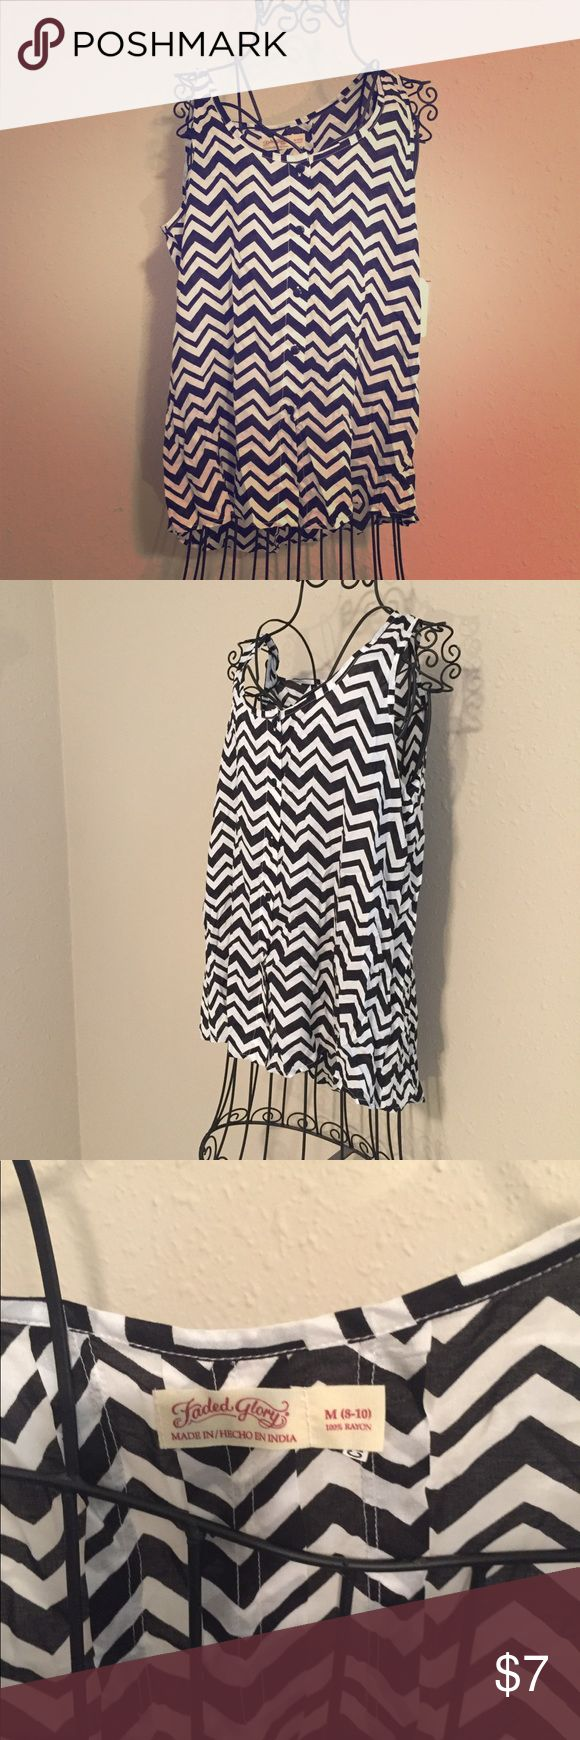 Black and White Chevron Top Your day will be easy breast in this carefree button down sleeveless top. Black and white chevron stripes add fun to your wardrobe. Top is long enough to pair with leggings. Add a cardigan to transition into fall! EUC, Smoke Free Home Faded Glory Tops Tank Tops